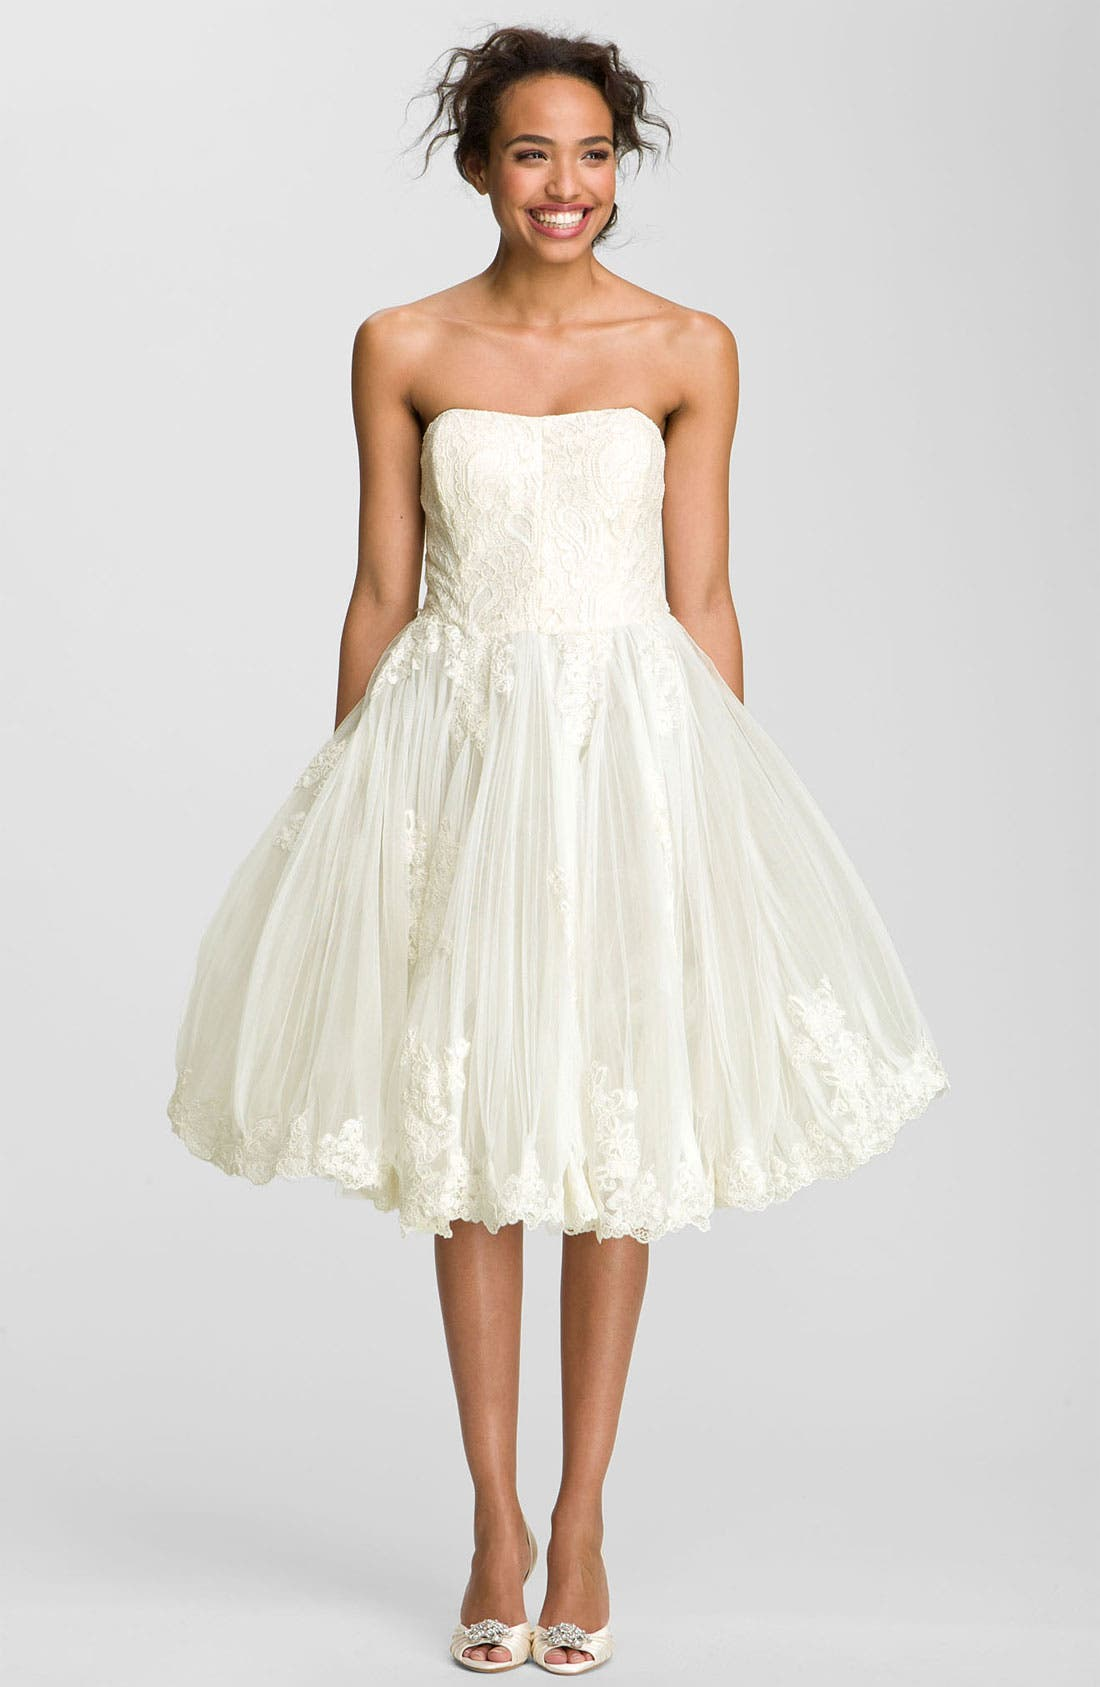 Main Image - Ted Baker London 'Raul' Strapless Tulle Fit & Flare Dress